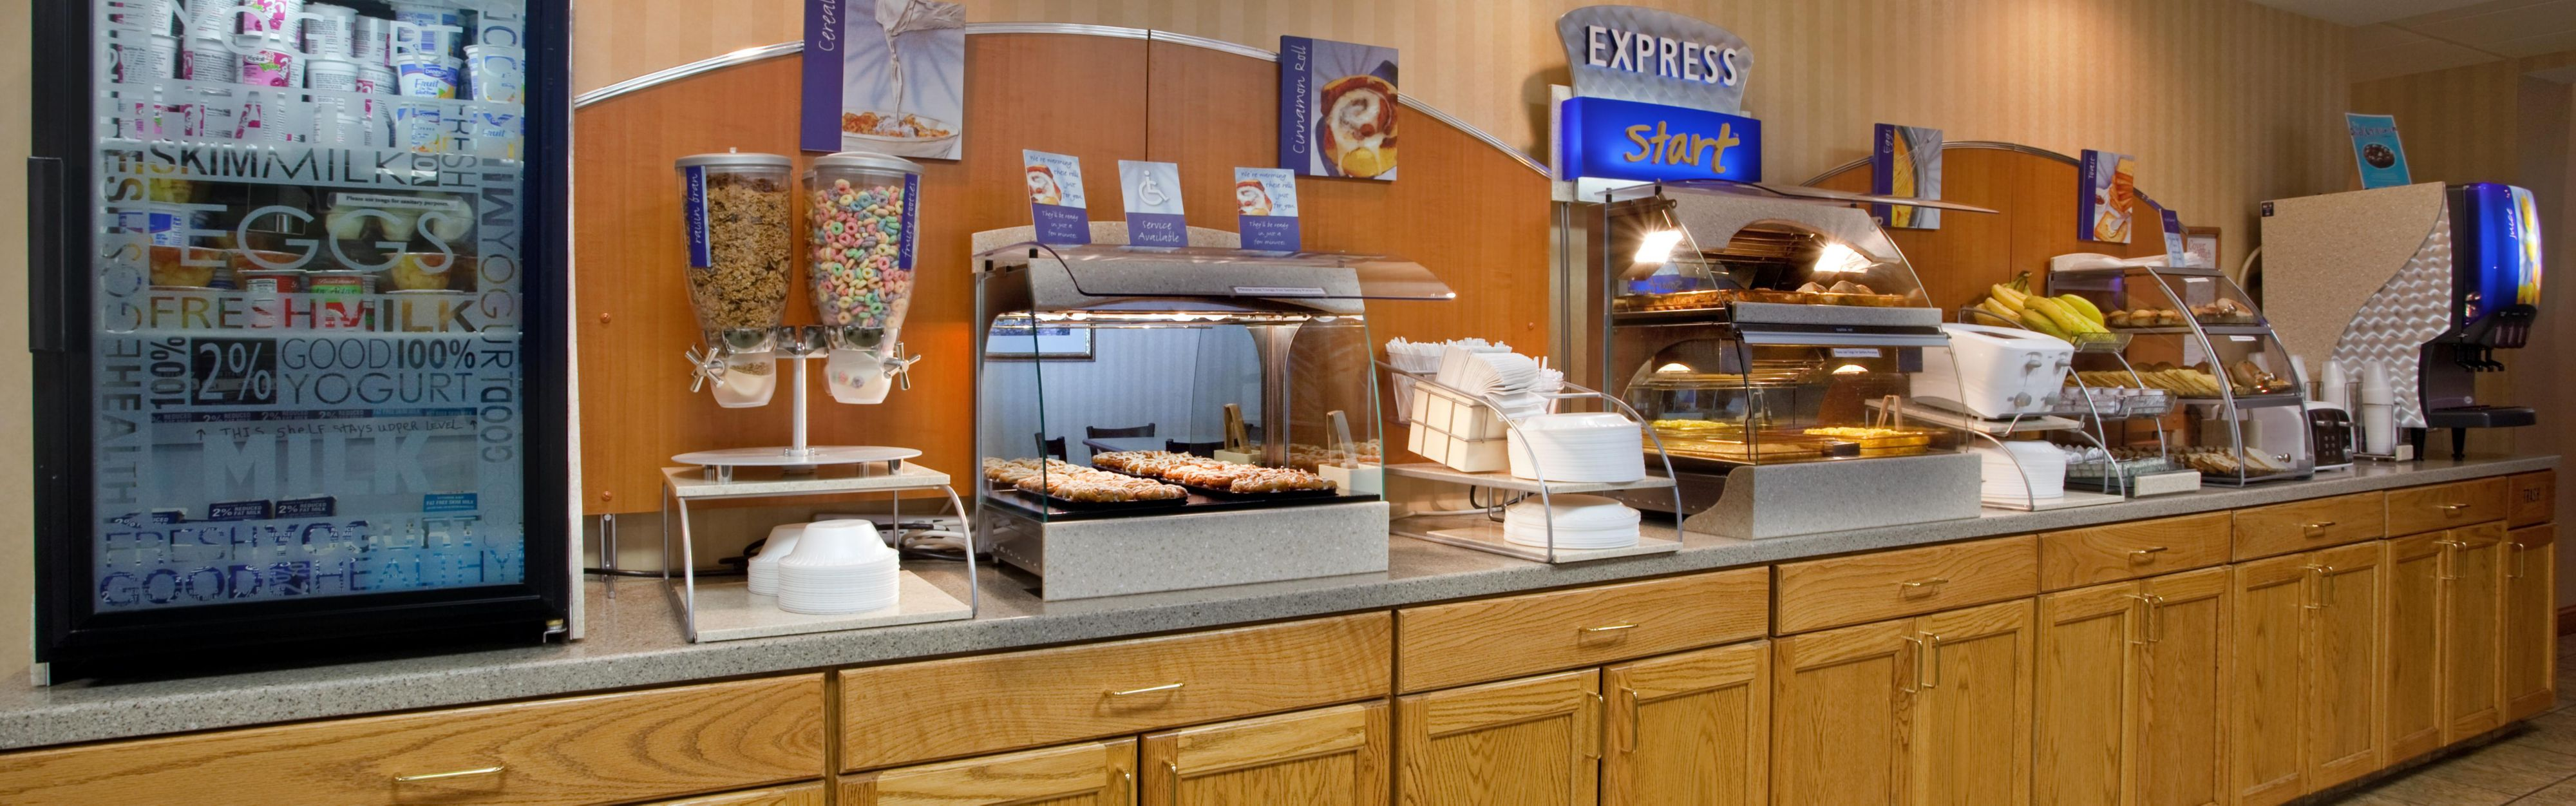 Holiday Inn Express Mt. Pleasant - Scottdale image 3